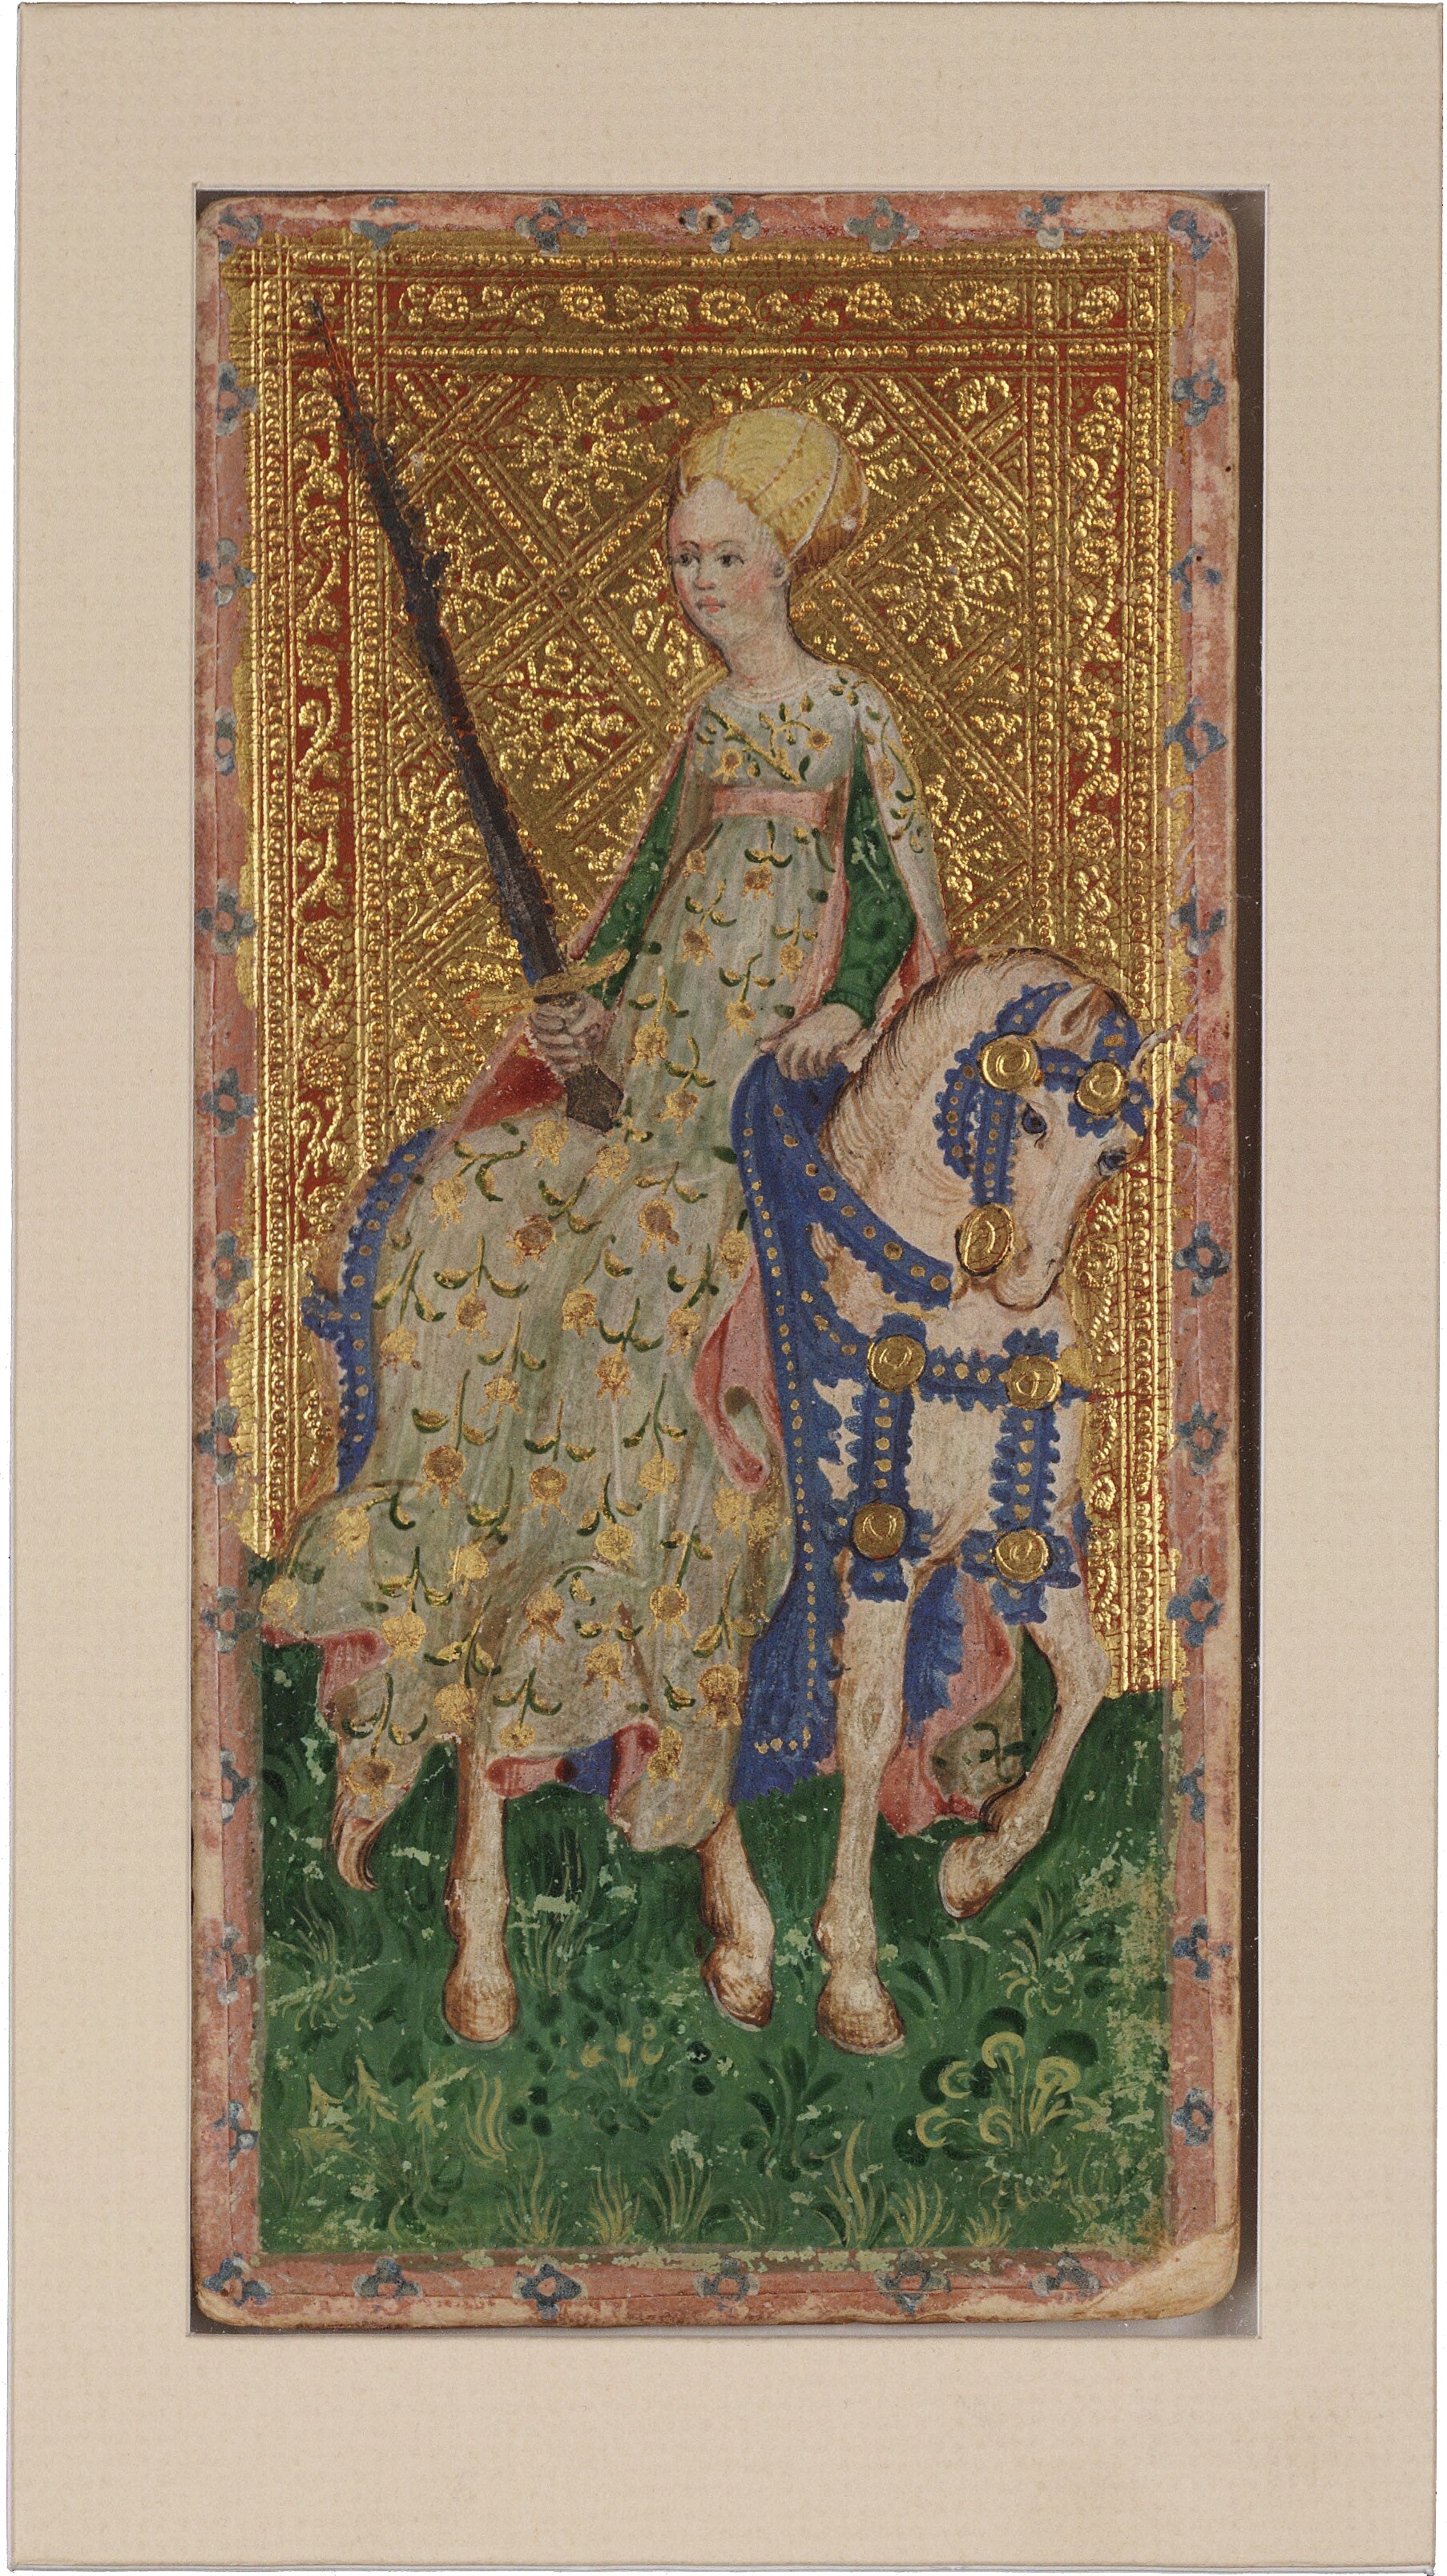 Female Knight (Swords) from the Visconti Tarot , Bonifacio Bembo Beinecke Rare Book and Manuscript Library, c. 1426-1447